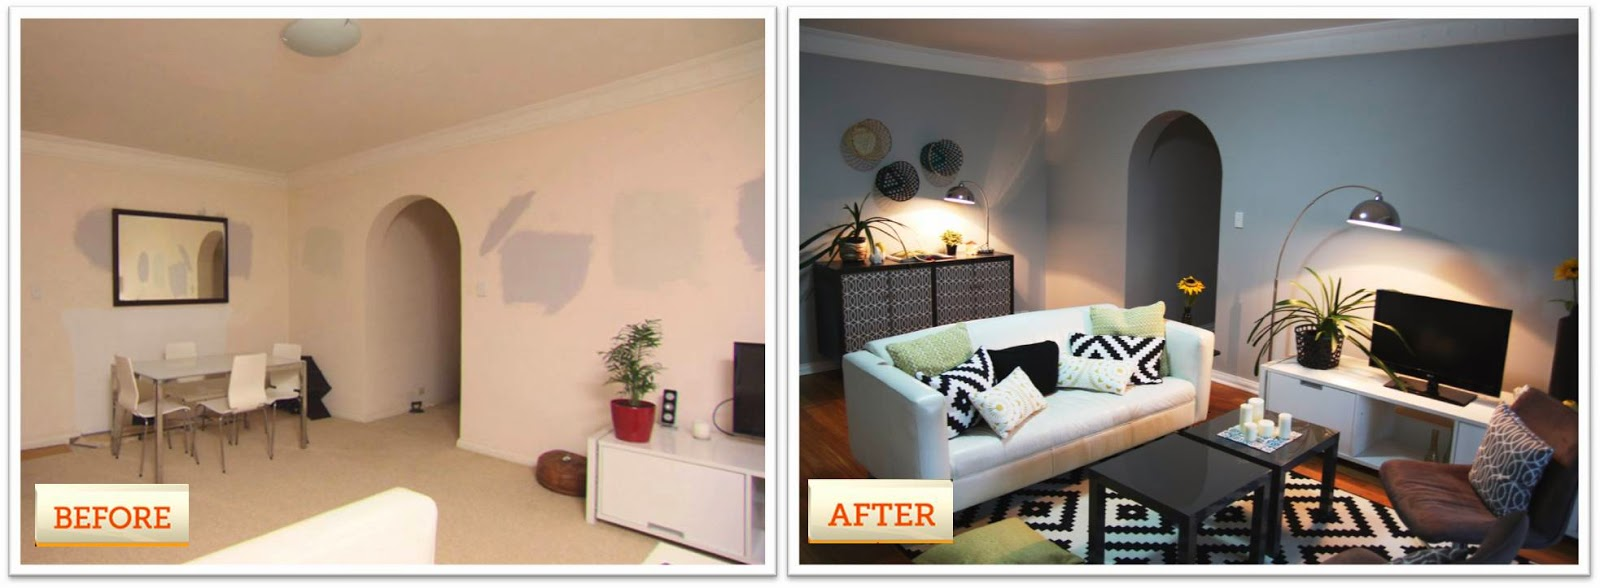 The living room design challenge on channel 10 - Living room renovation before and after ...